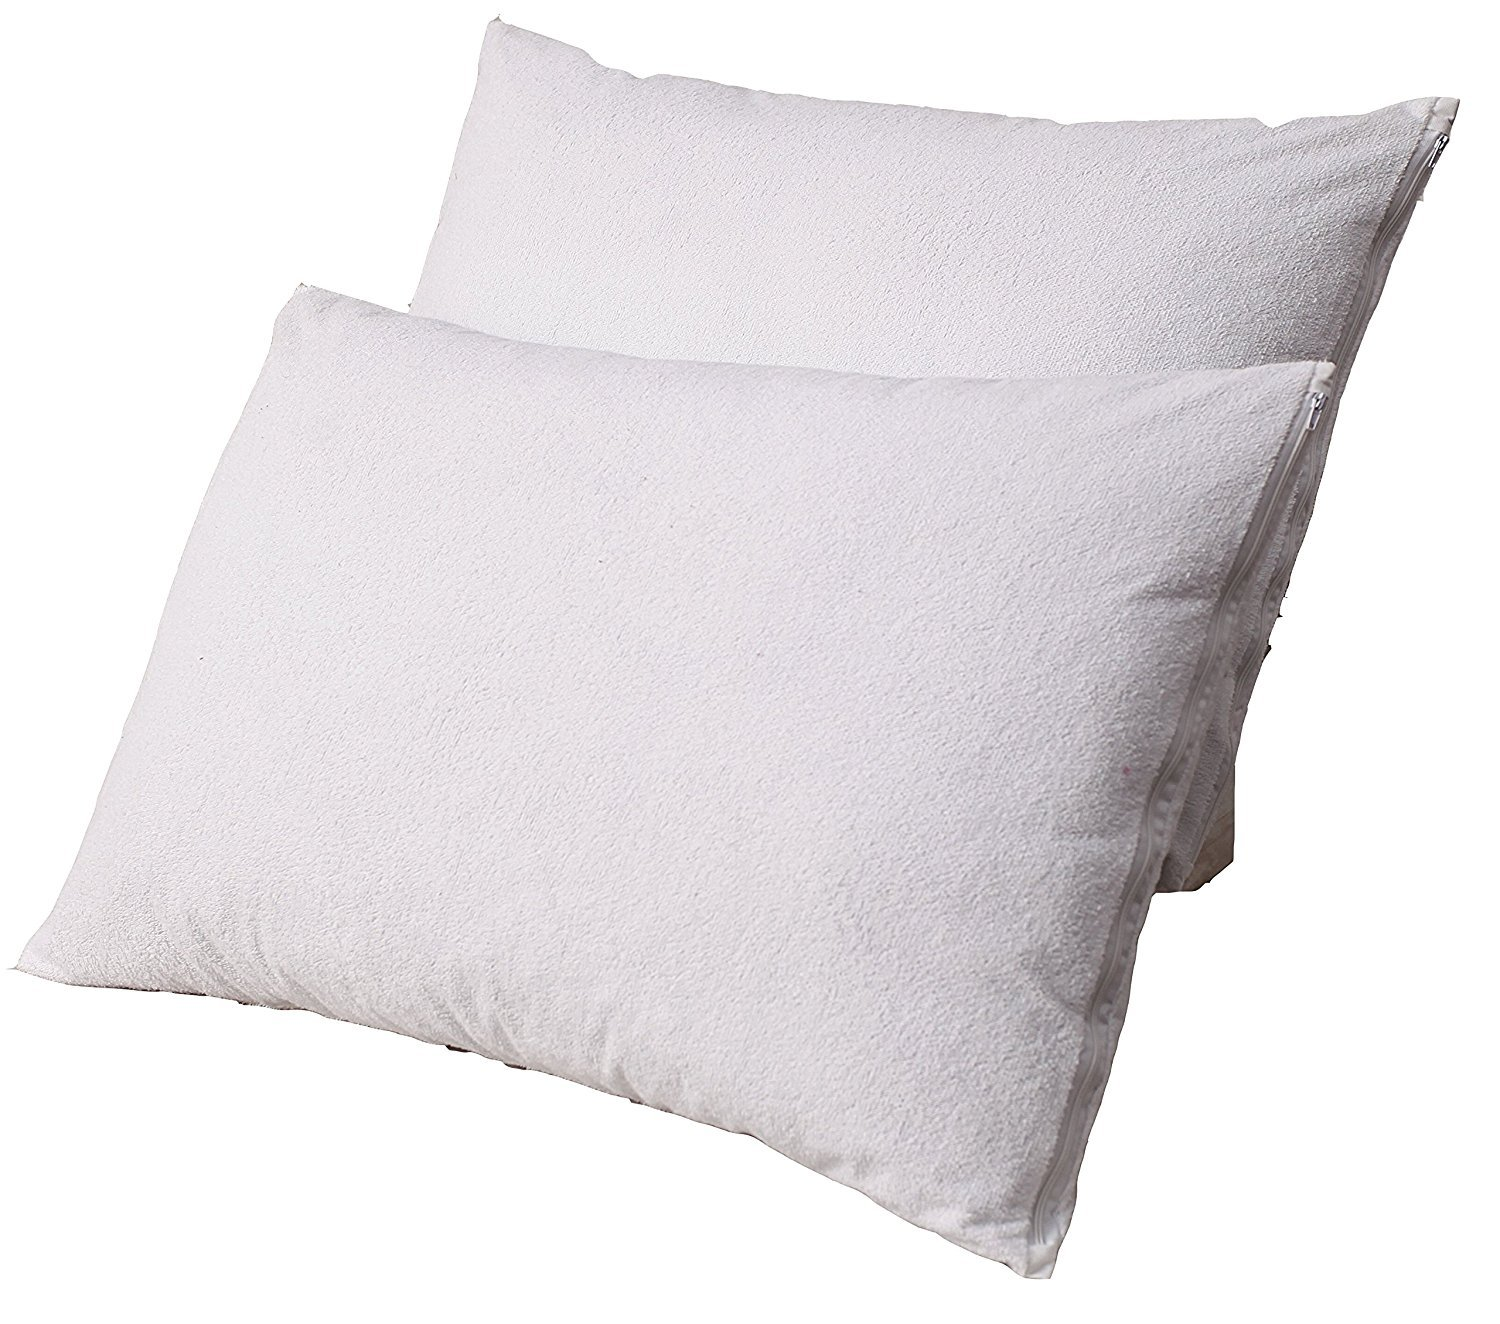 Trance Home Linen Set of 2 Standard Pillow Protectors - 100% Waterproof, Bed Bug Proof, Hypoallergenic - Premium Zippered Cotton Terry Cover (WHITE) by